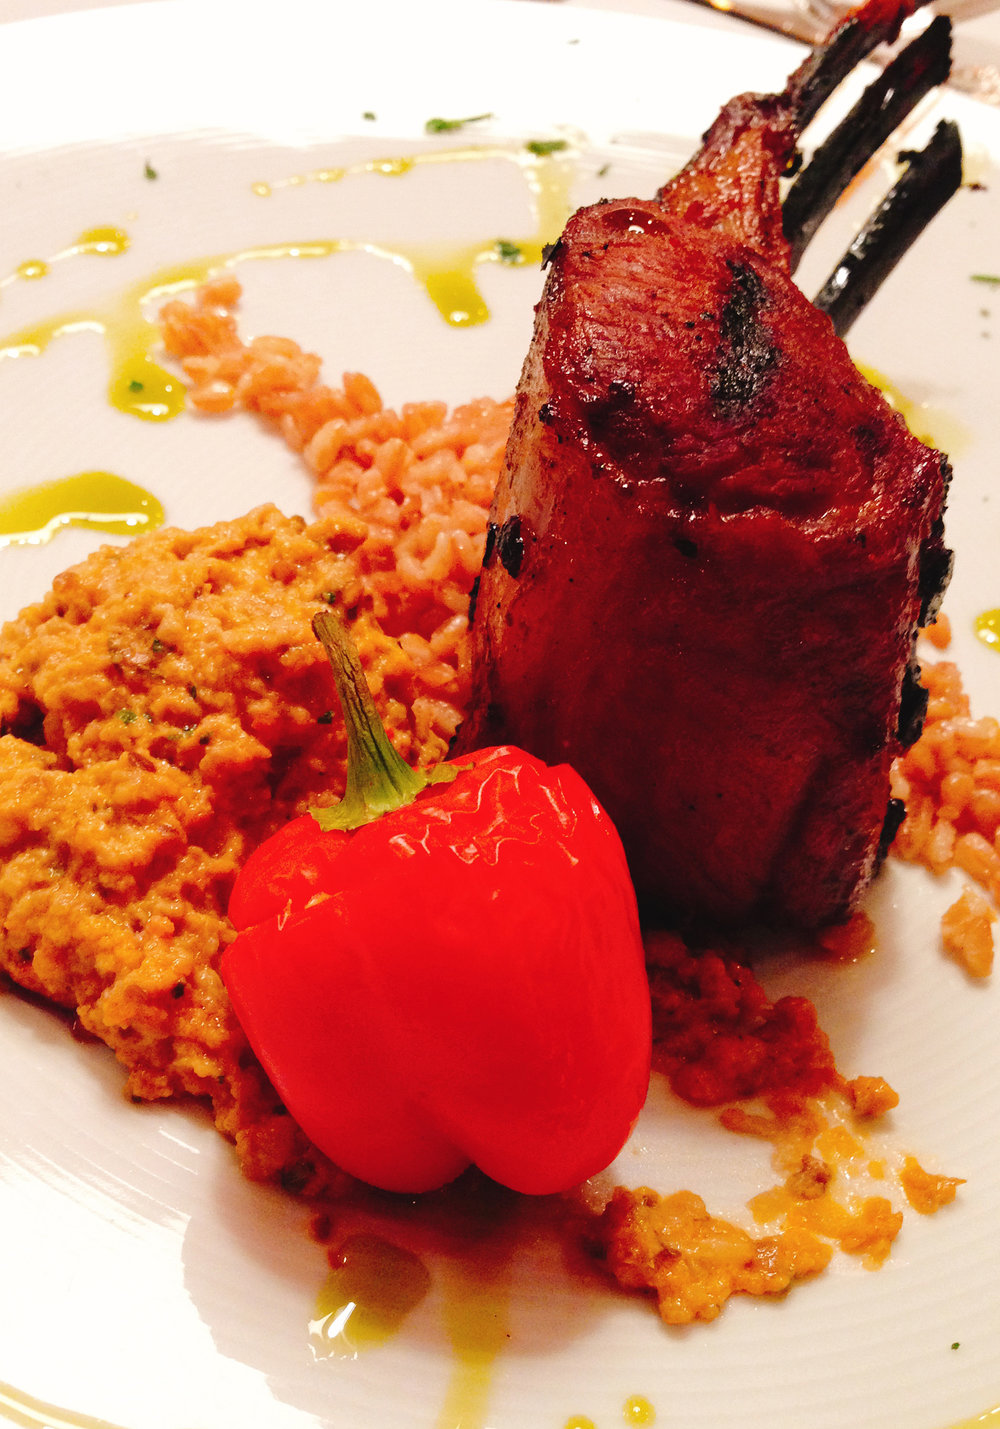 Marinated grilled rack of lamb with baba ganoush, feta sauteed peppers and orange farro.